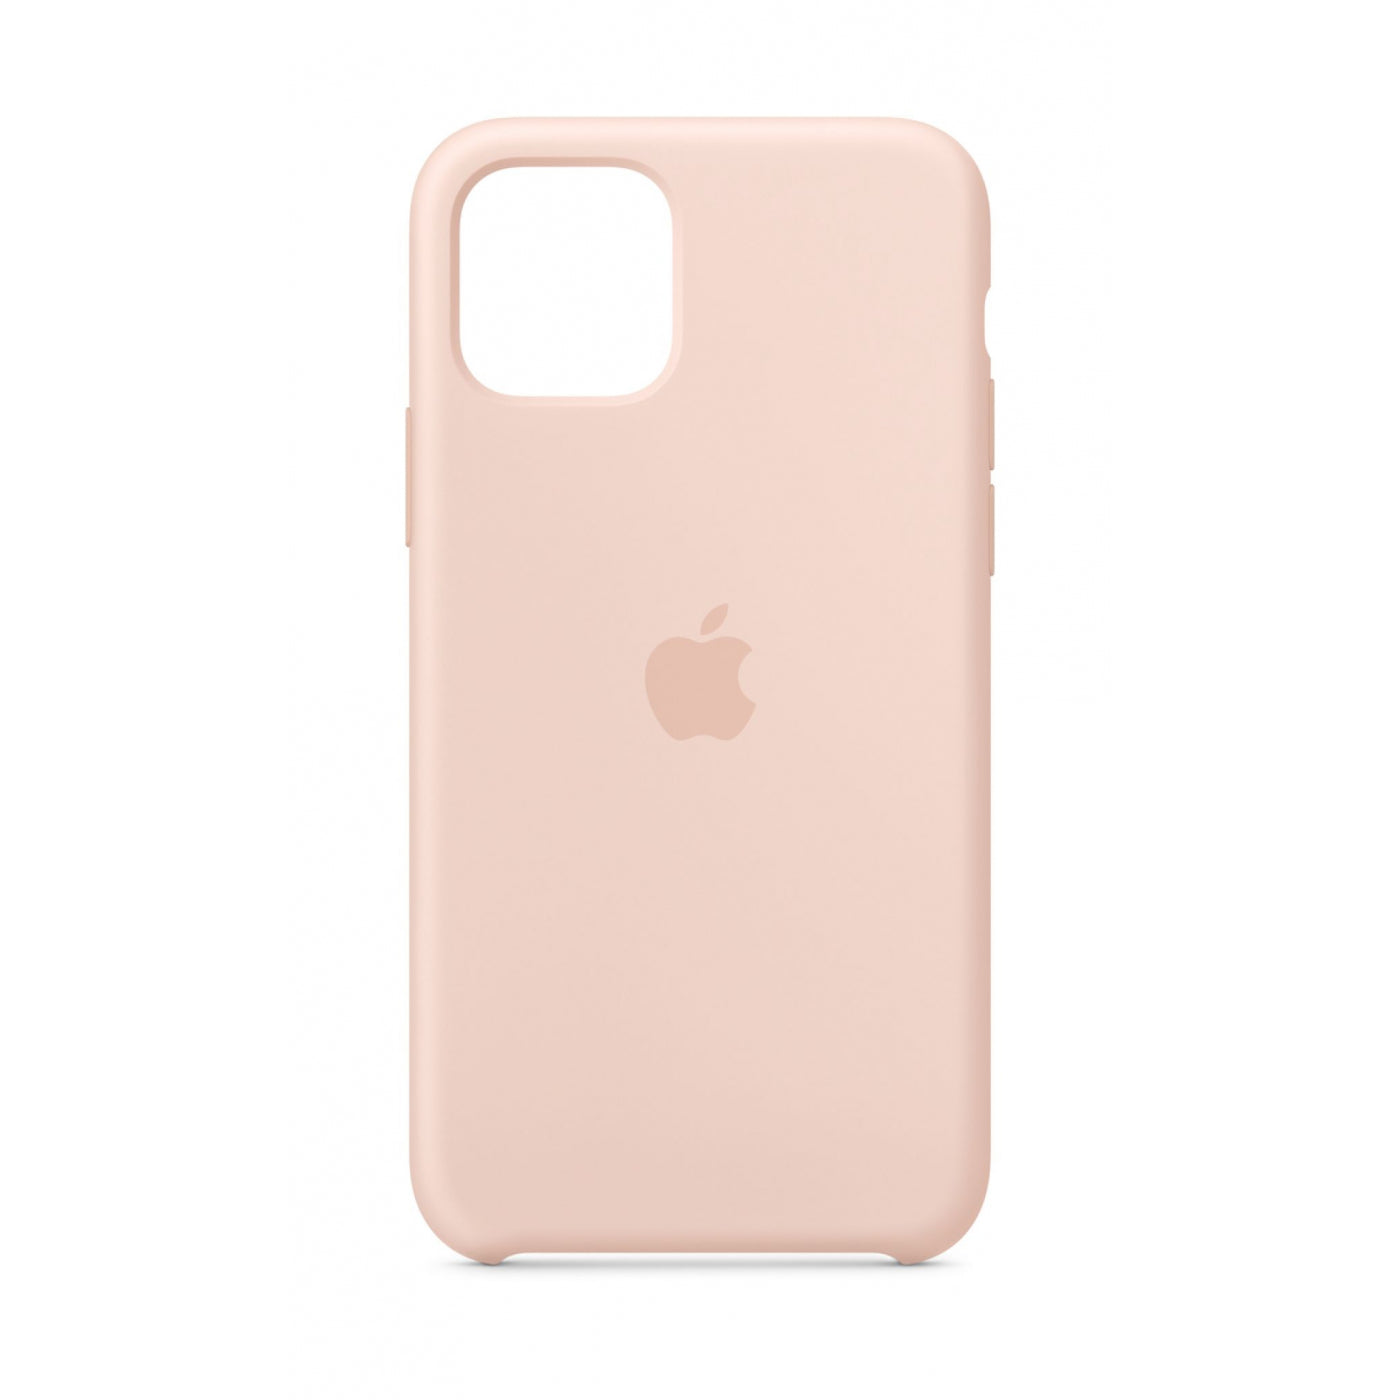 Silicon Case For iPhone 11 Pro Max - Golden - Mobilegadgets360